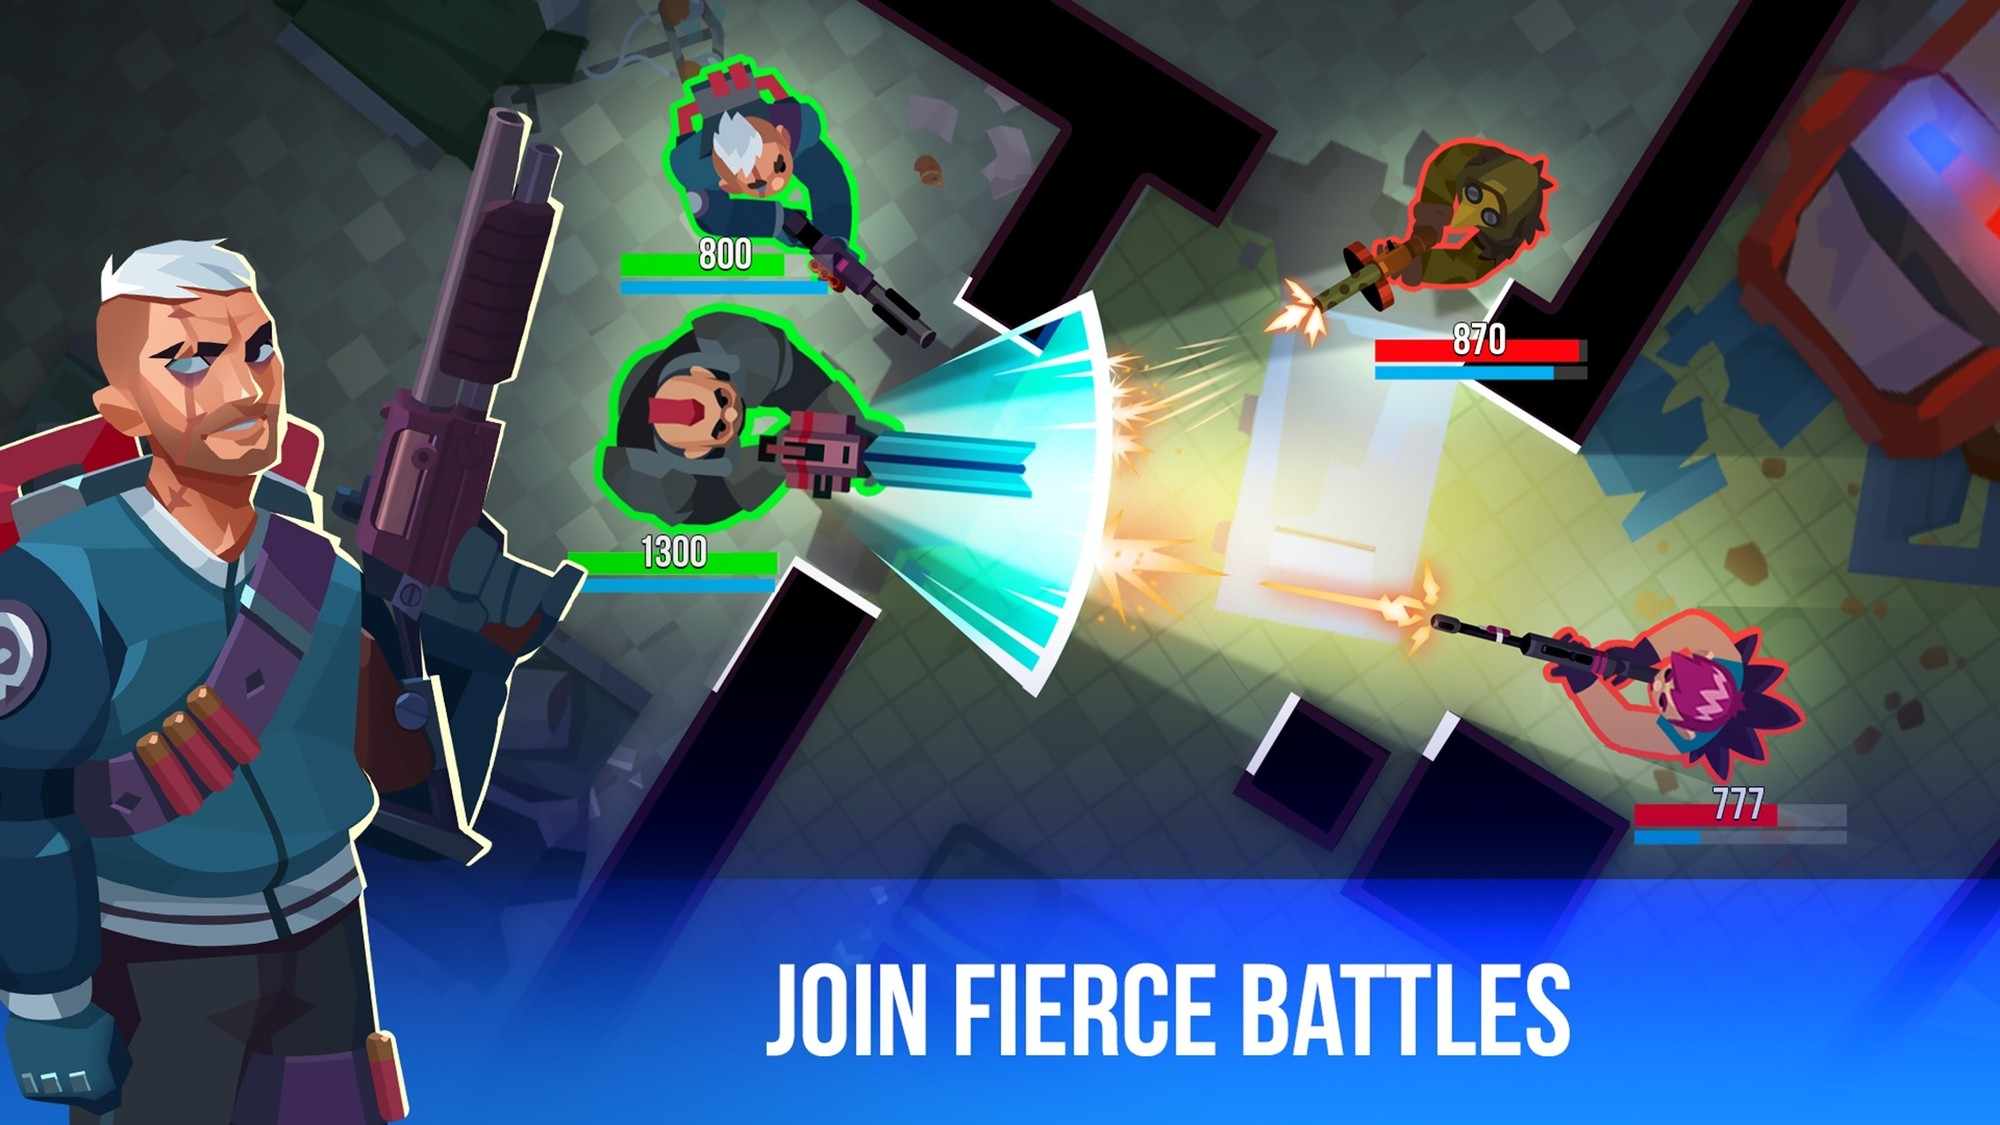 Join fierce battles